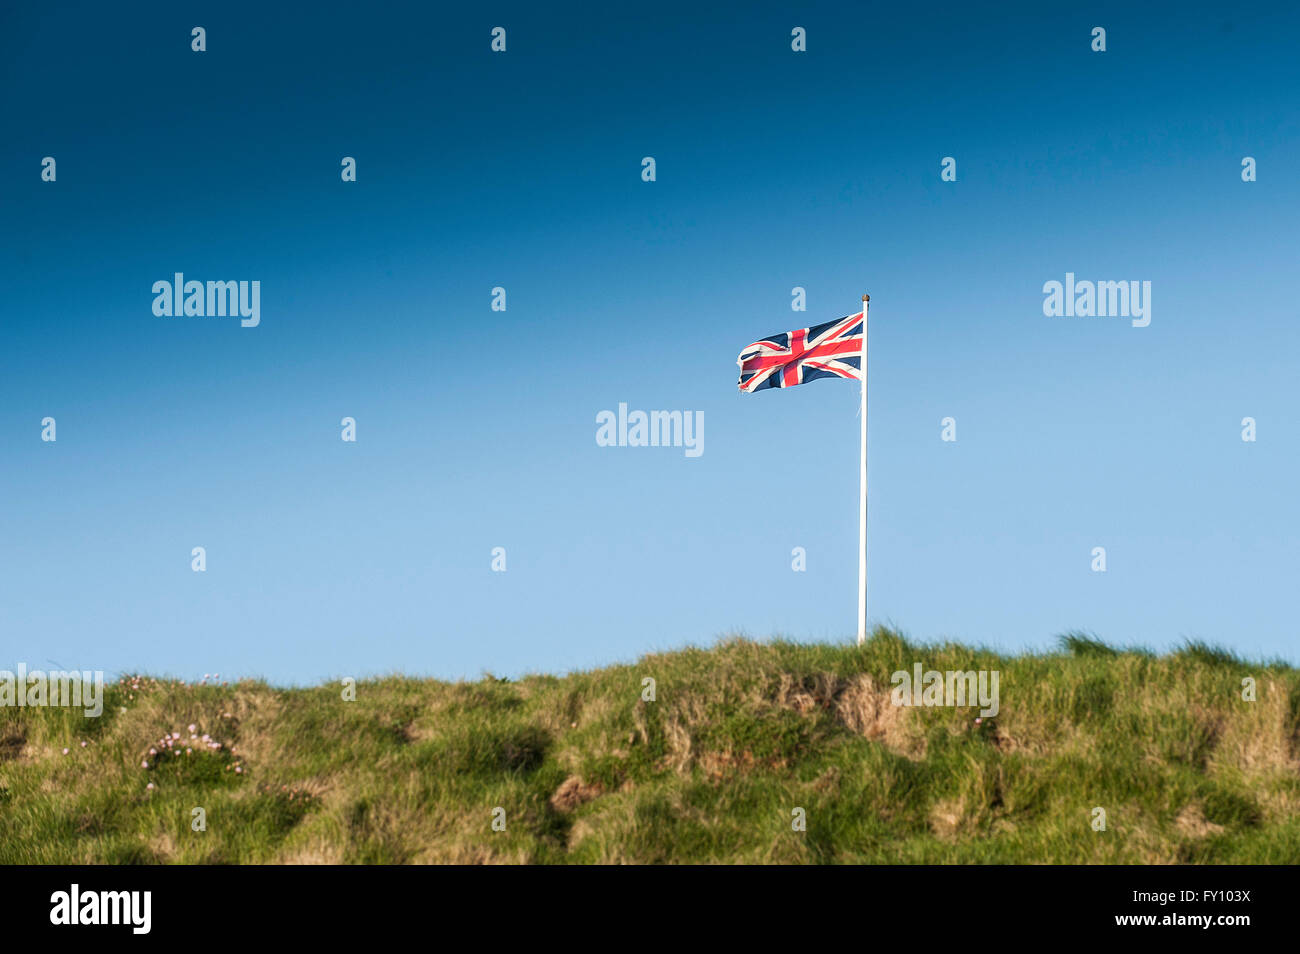 A Union Flag flying from a flagpole. - Stock Image